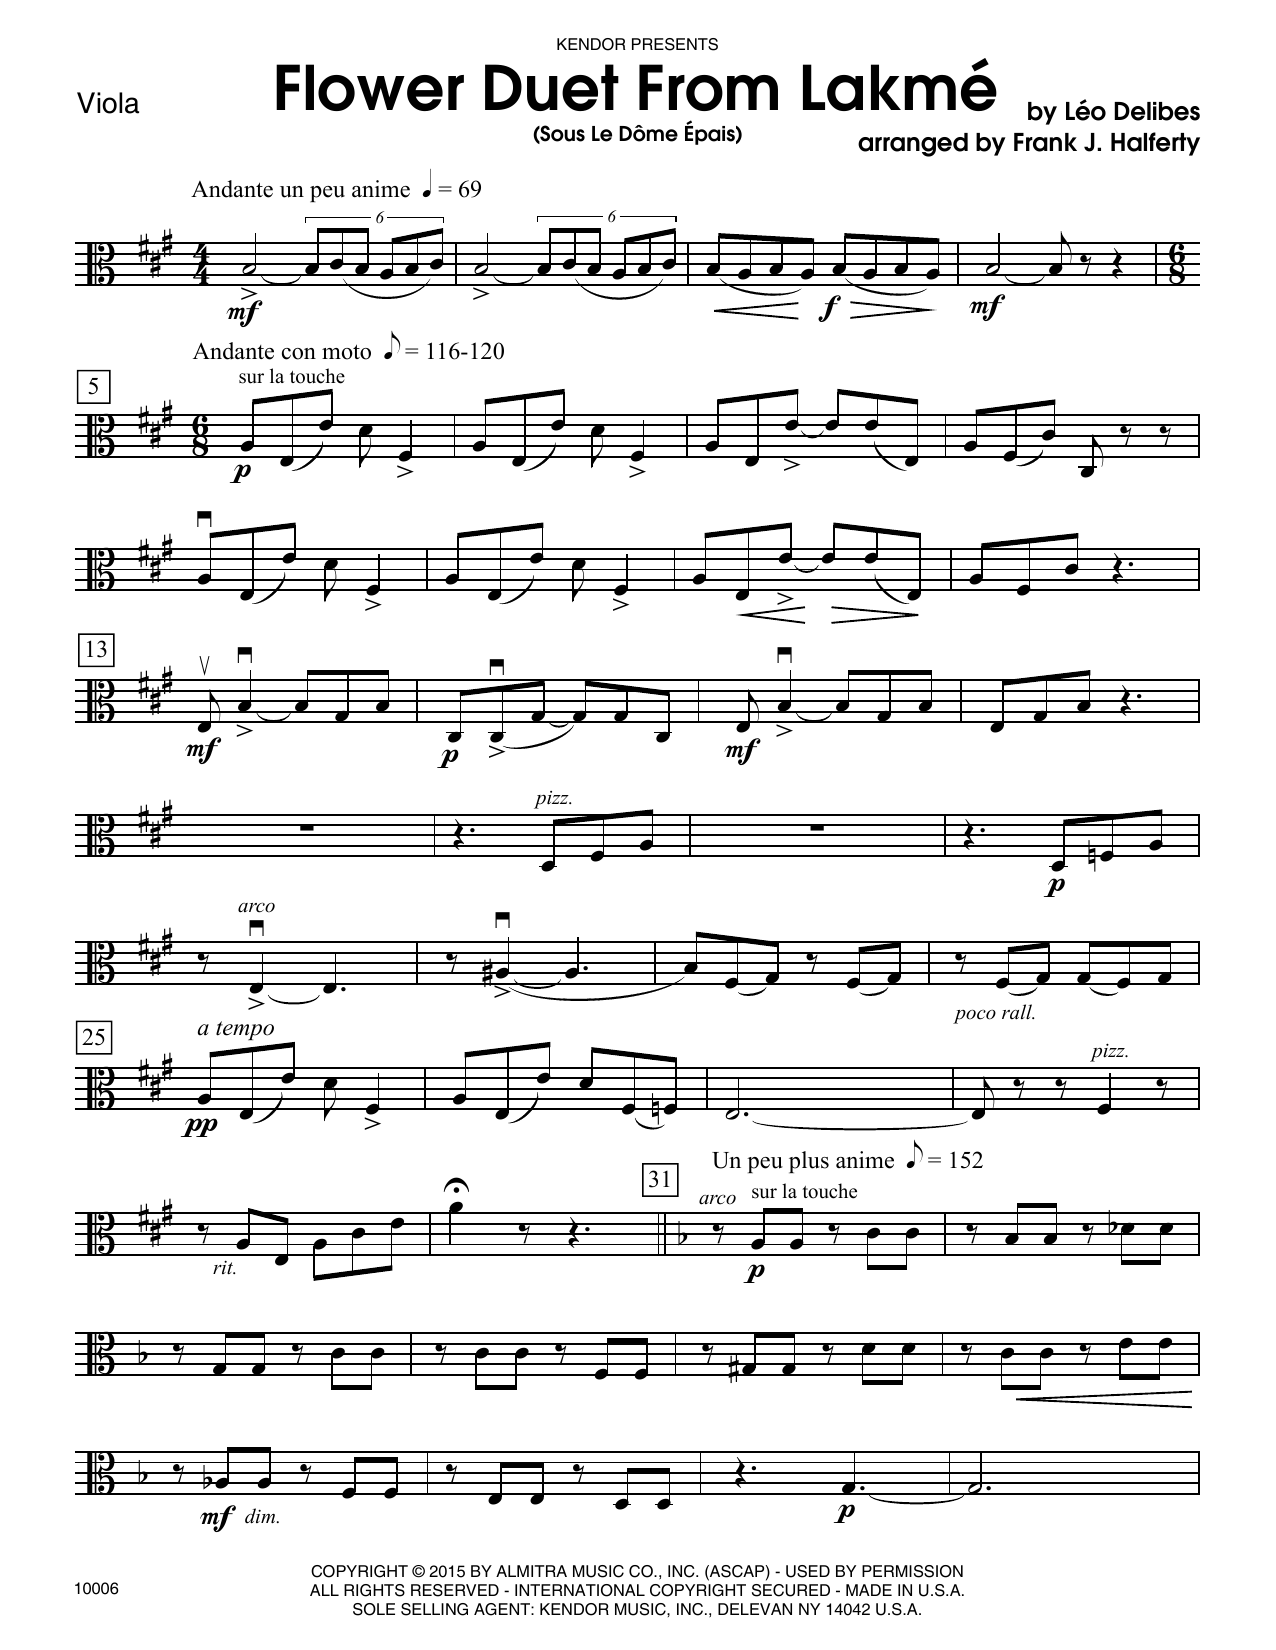 Frank J. Halferty Flower Duet From Lakme (Sous Le Dome Epais) - Viola sheet music notes and chords. Download Printable PDF.